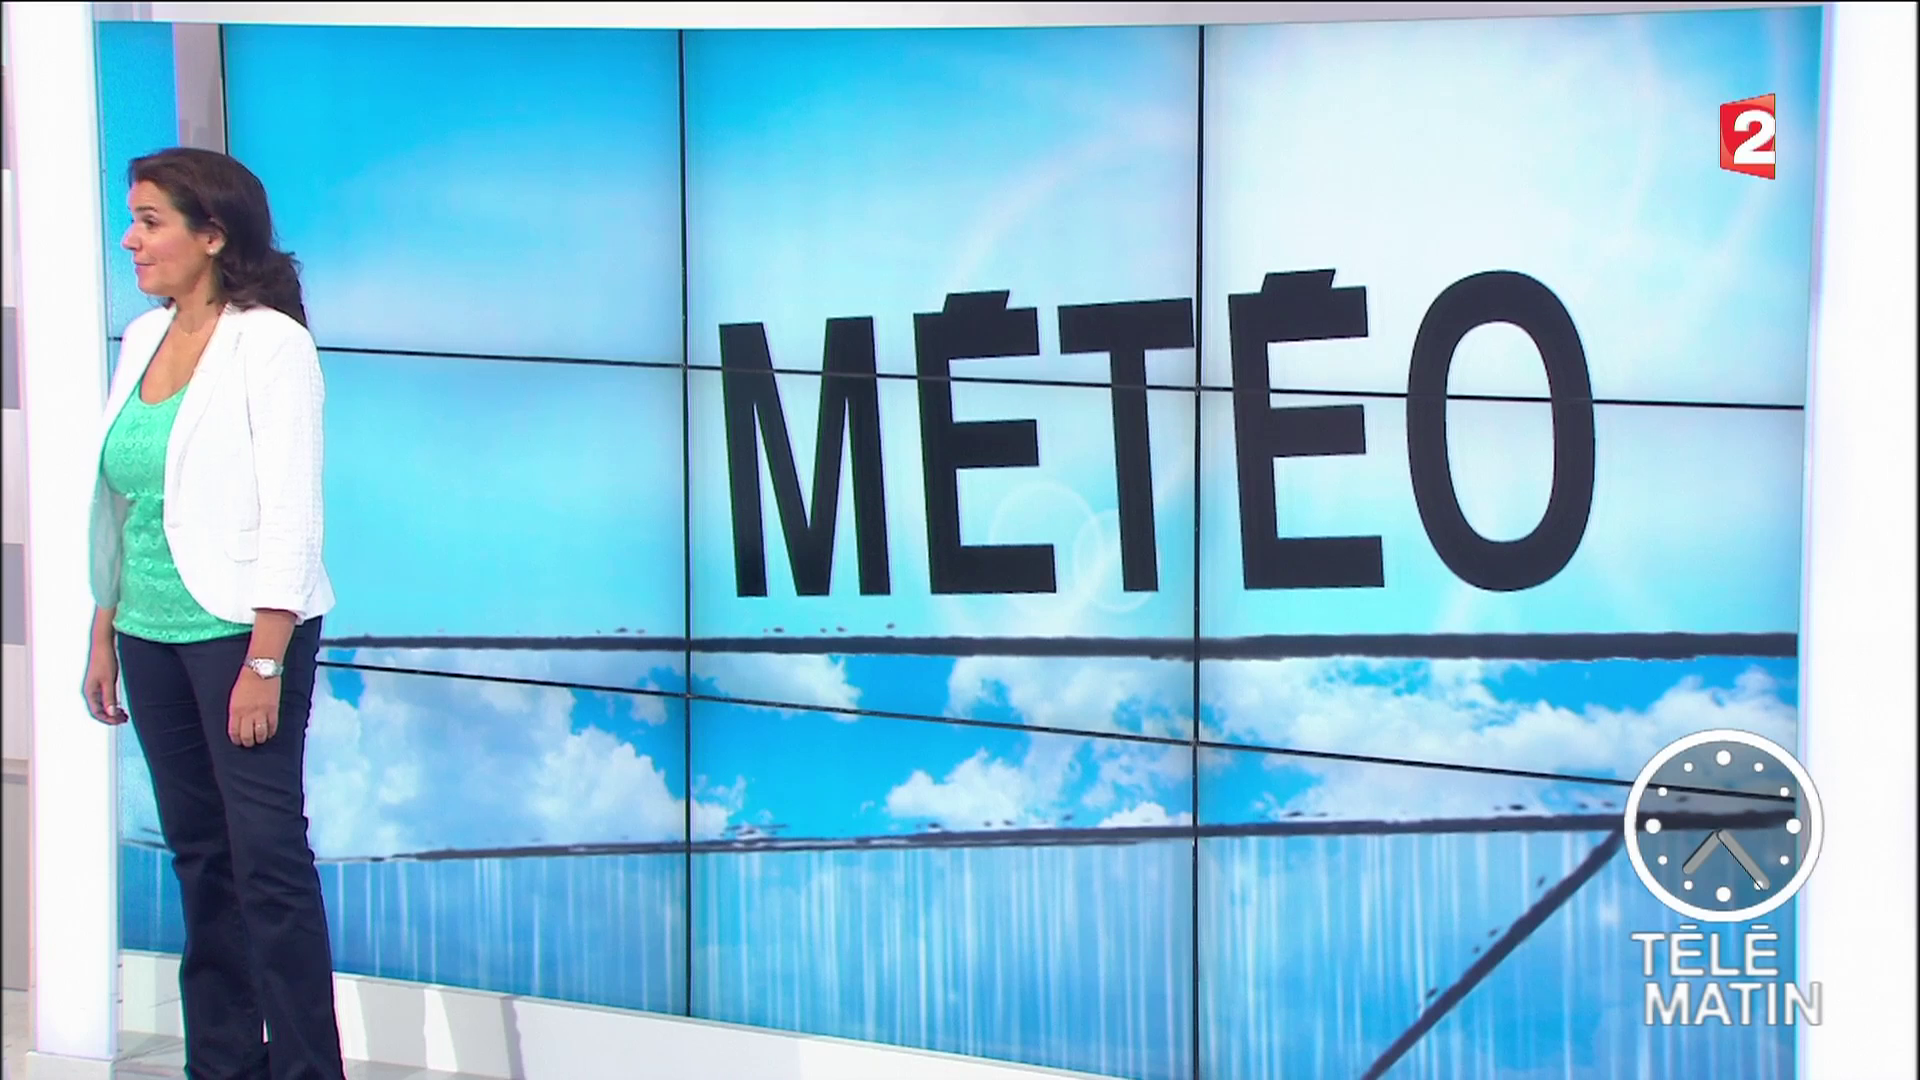 patriciacharbonnier06.2015_08_14_meteotelematinFRANCE2